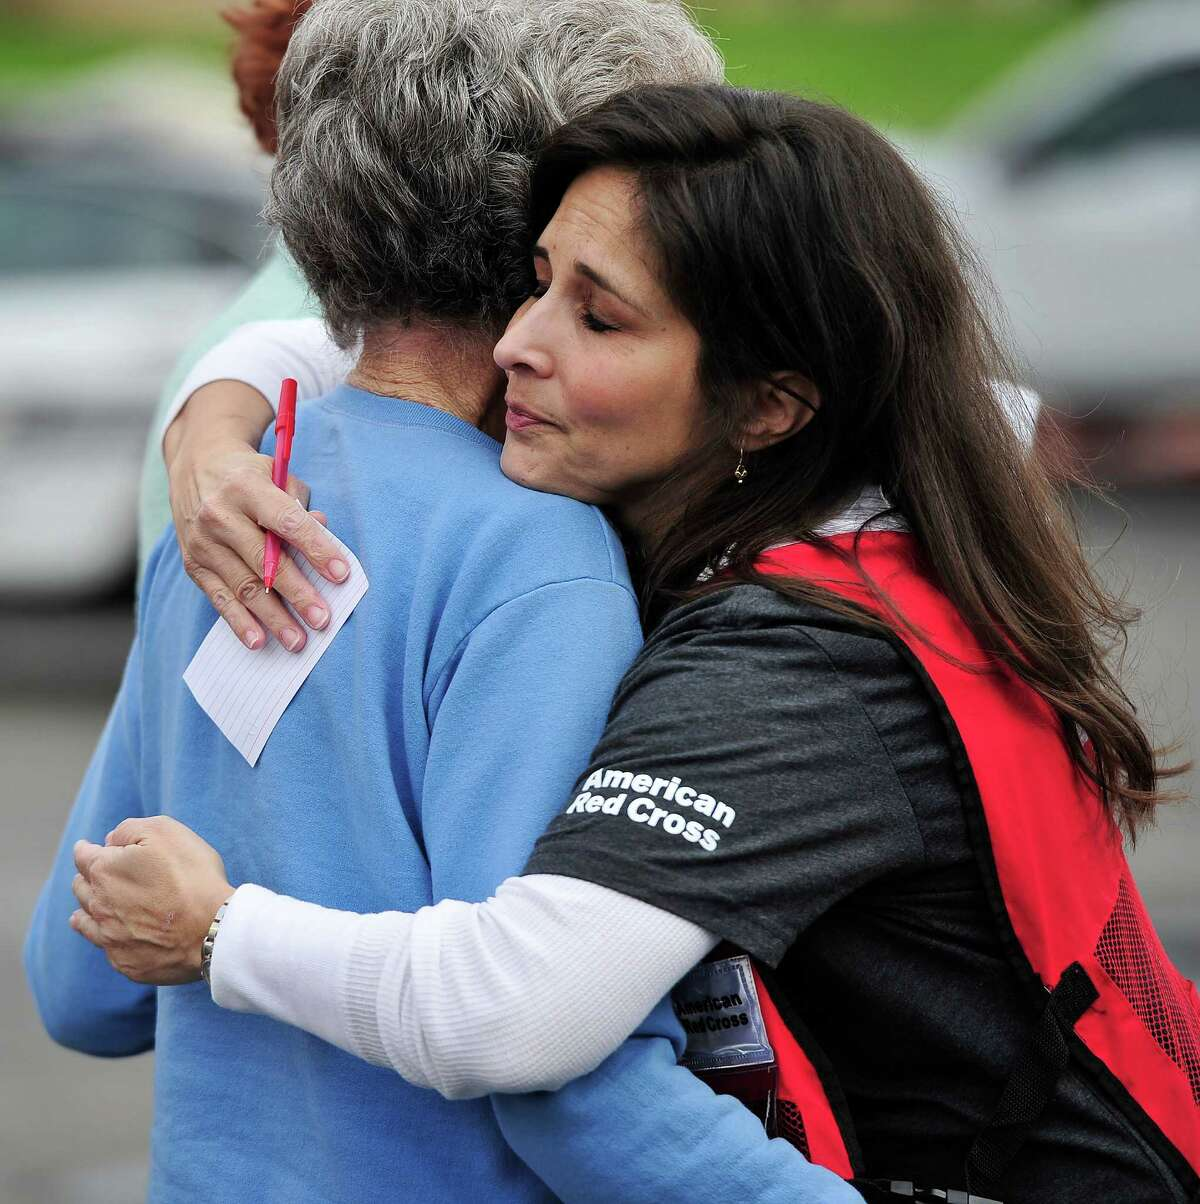 American Red Cross volunteer Adriana Casso hugs a resident of Wedgwood Nursing Home after a fire at the home near Blanco rd and 410 forced the evacuation of residents early Sunday, December 28, 2014 in San Antonio, Texas. Evacuees were taken to nearby Winston Churchill High School were they met with family members and waited for buses which took them to nearby hotels.